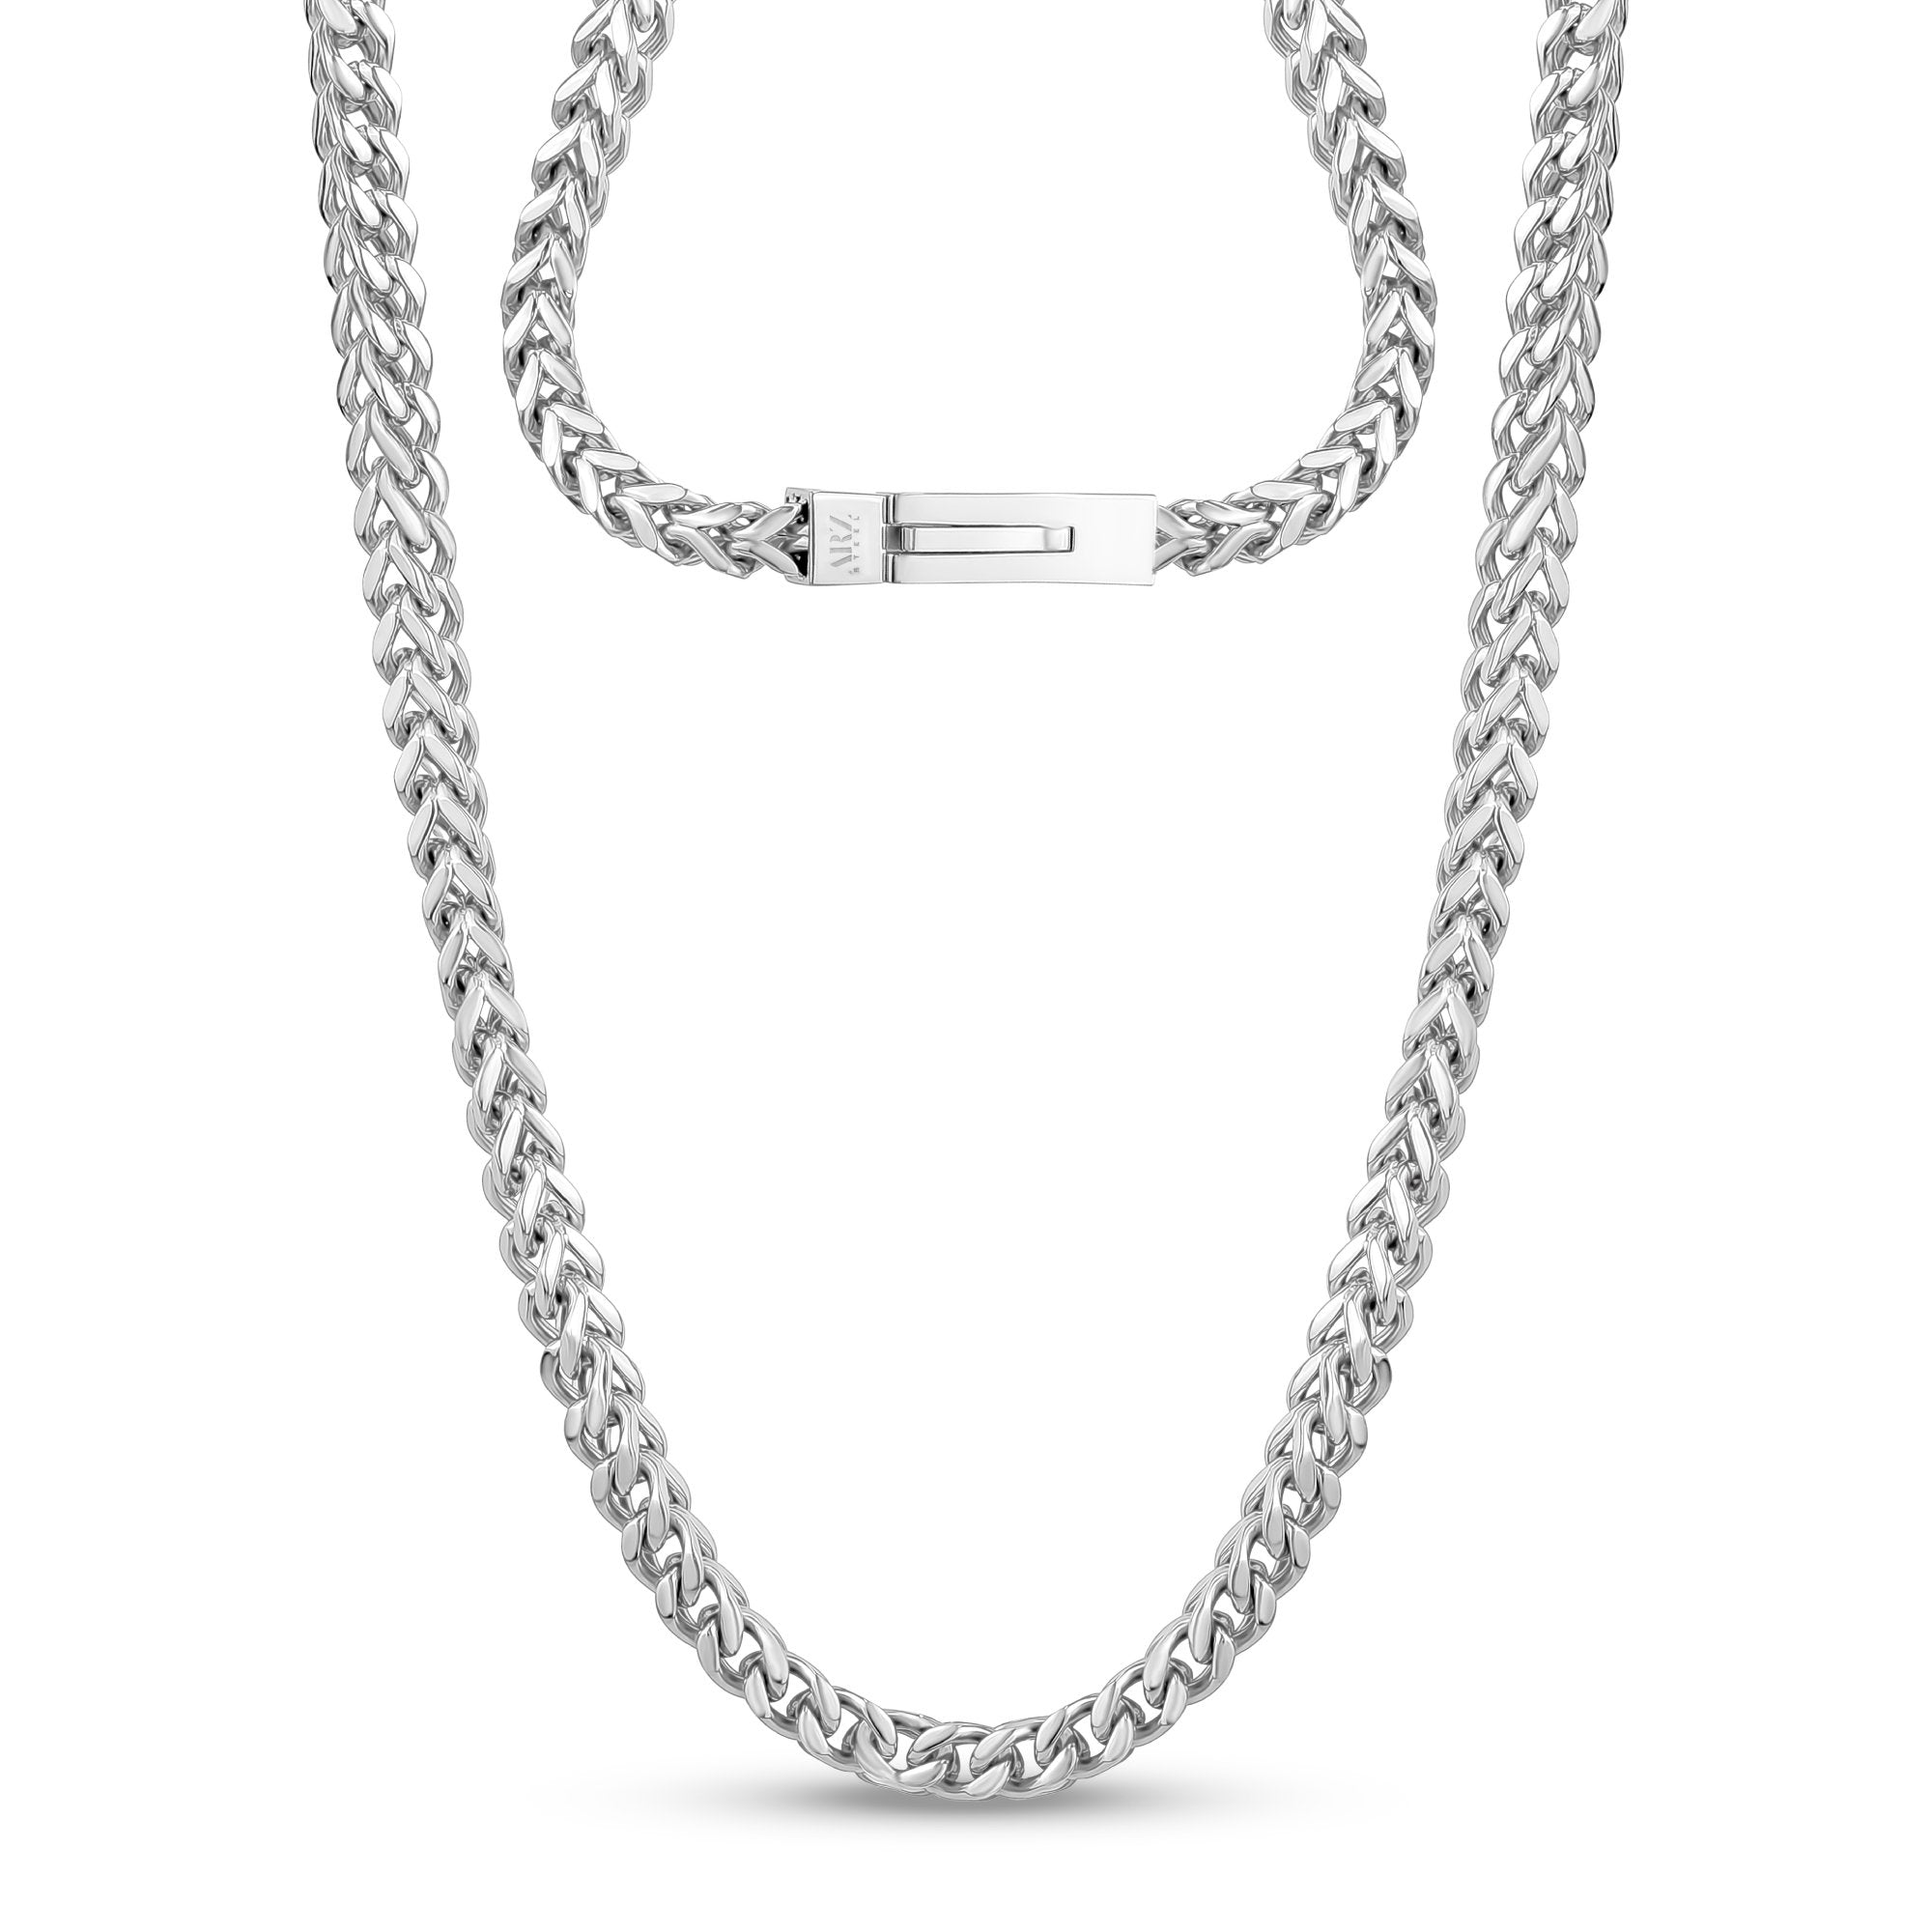 Men Necklace - 6mm Stainless Steel Franco Link Chain Necklace - Engravable